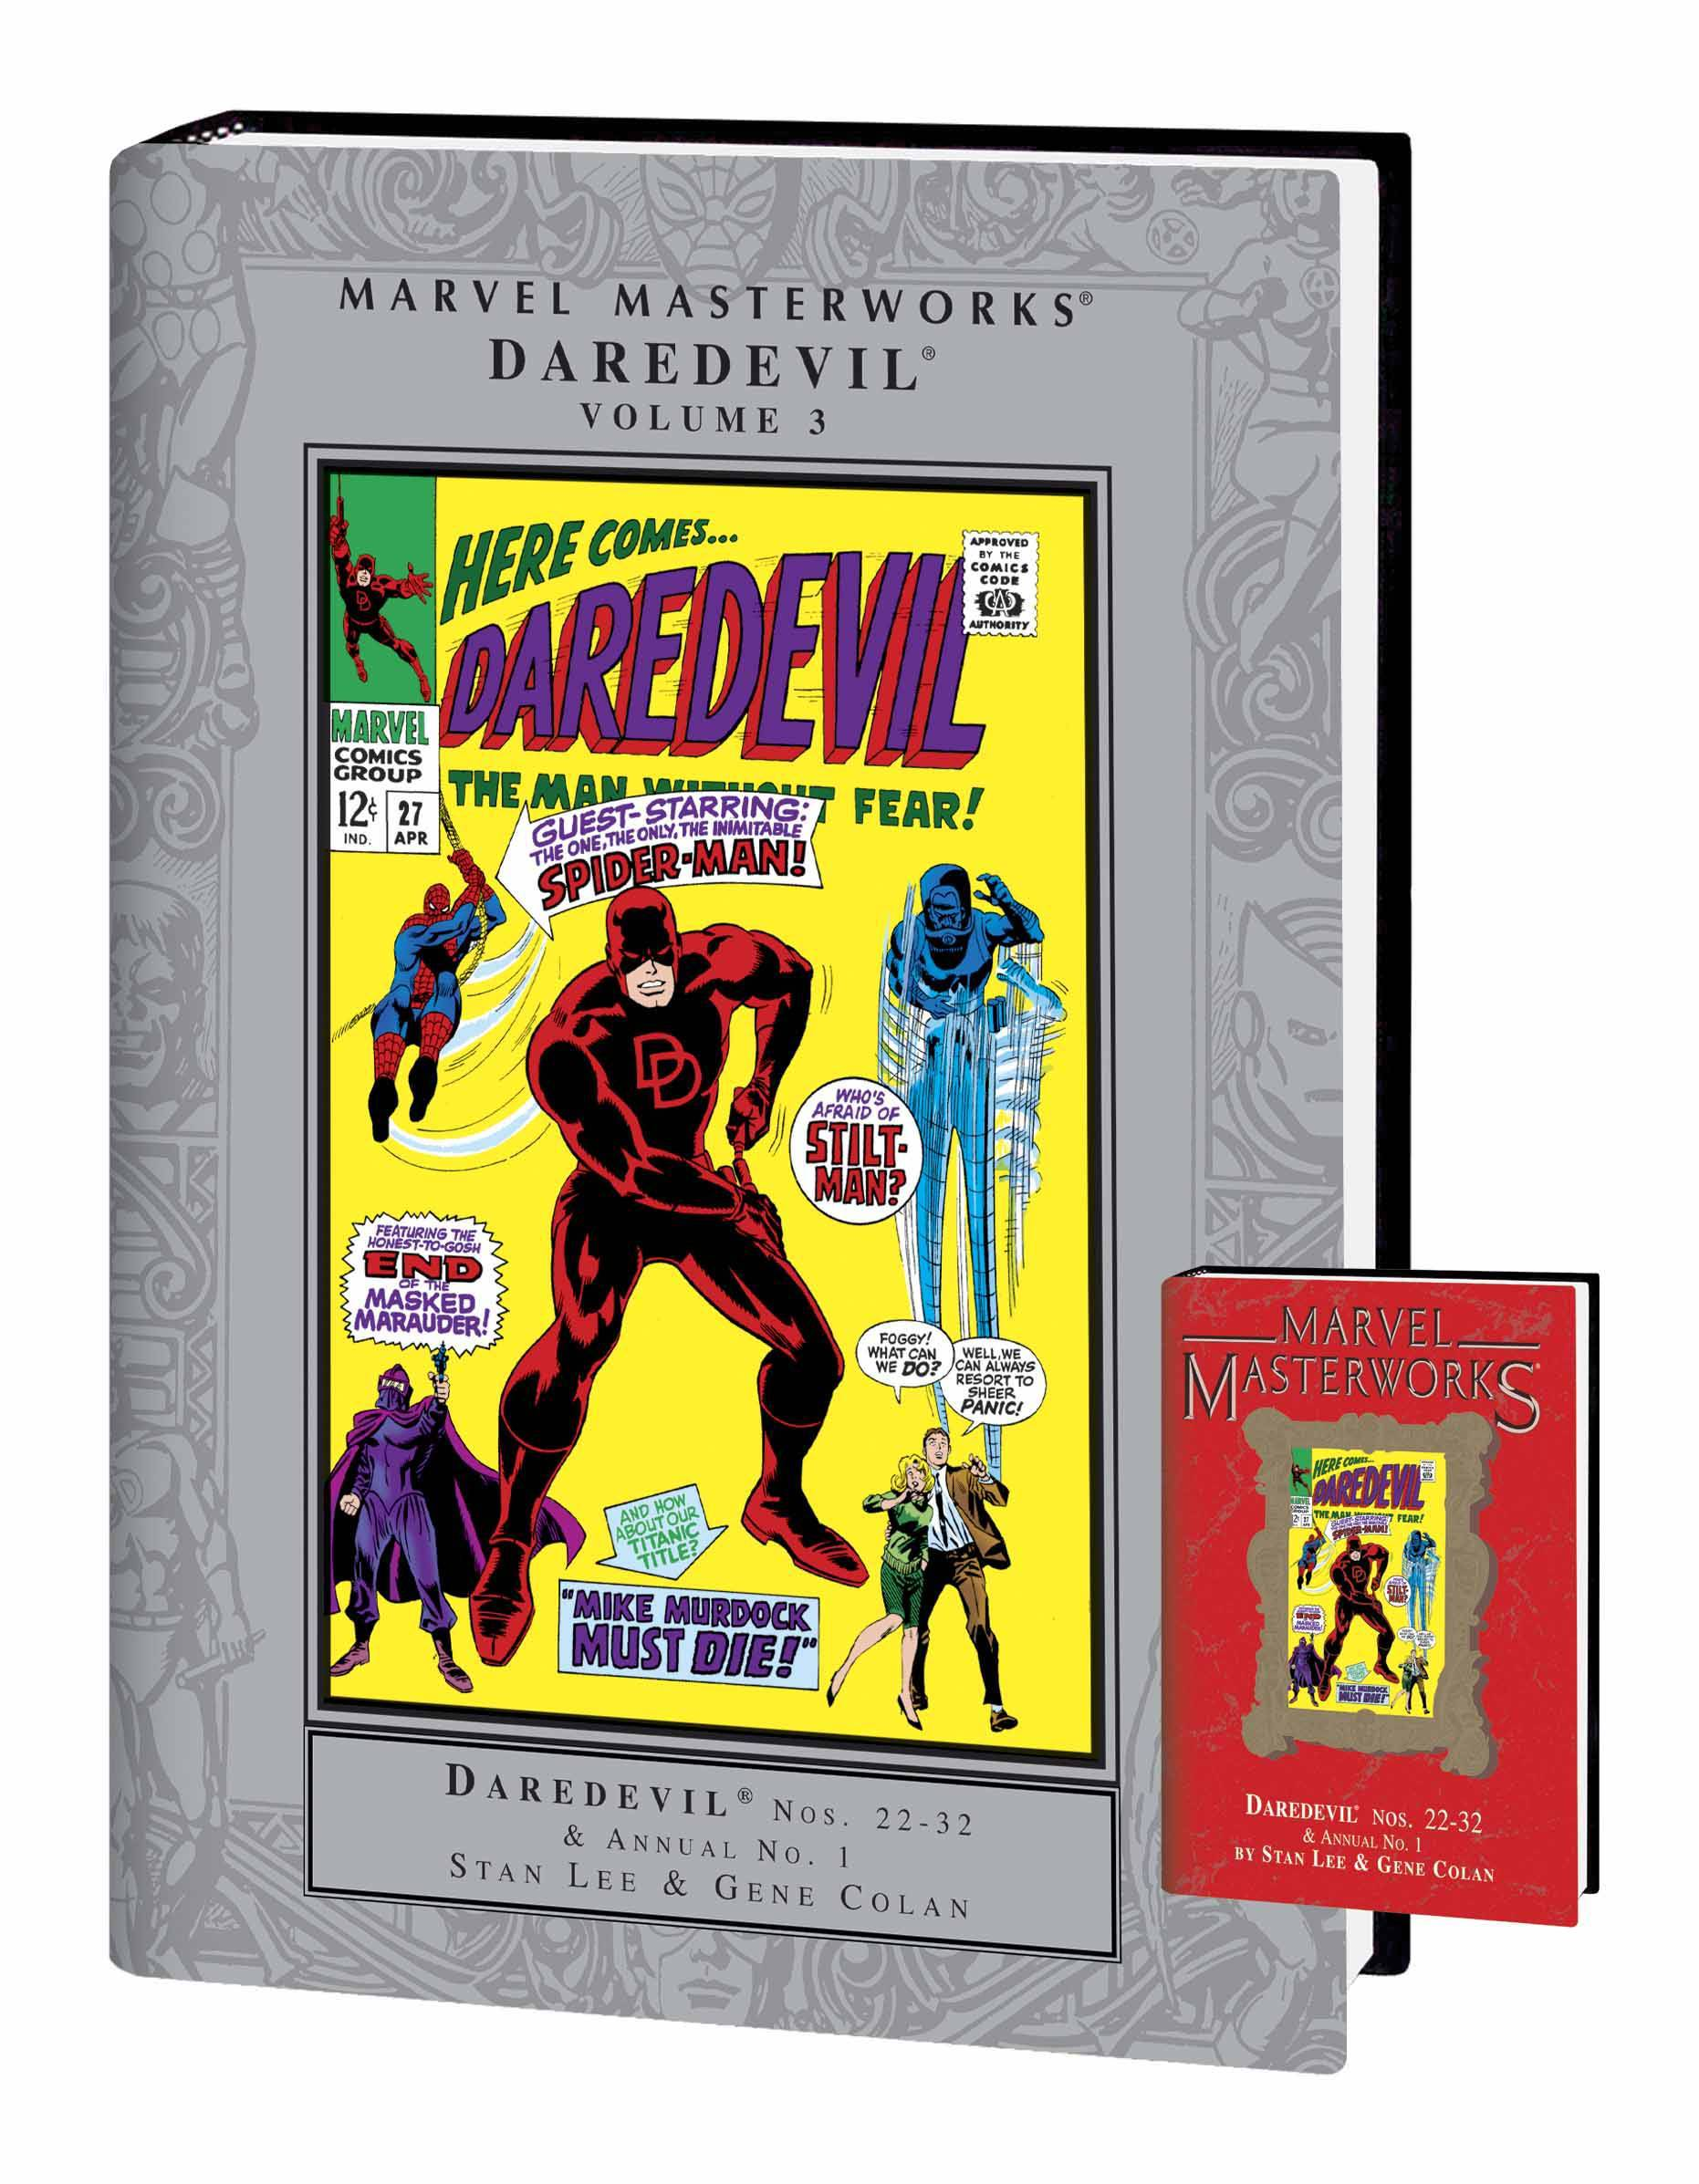 MMW DAREDEVIL HC VOL 03